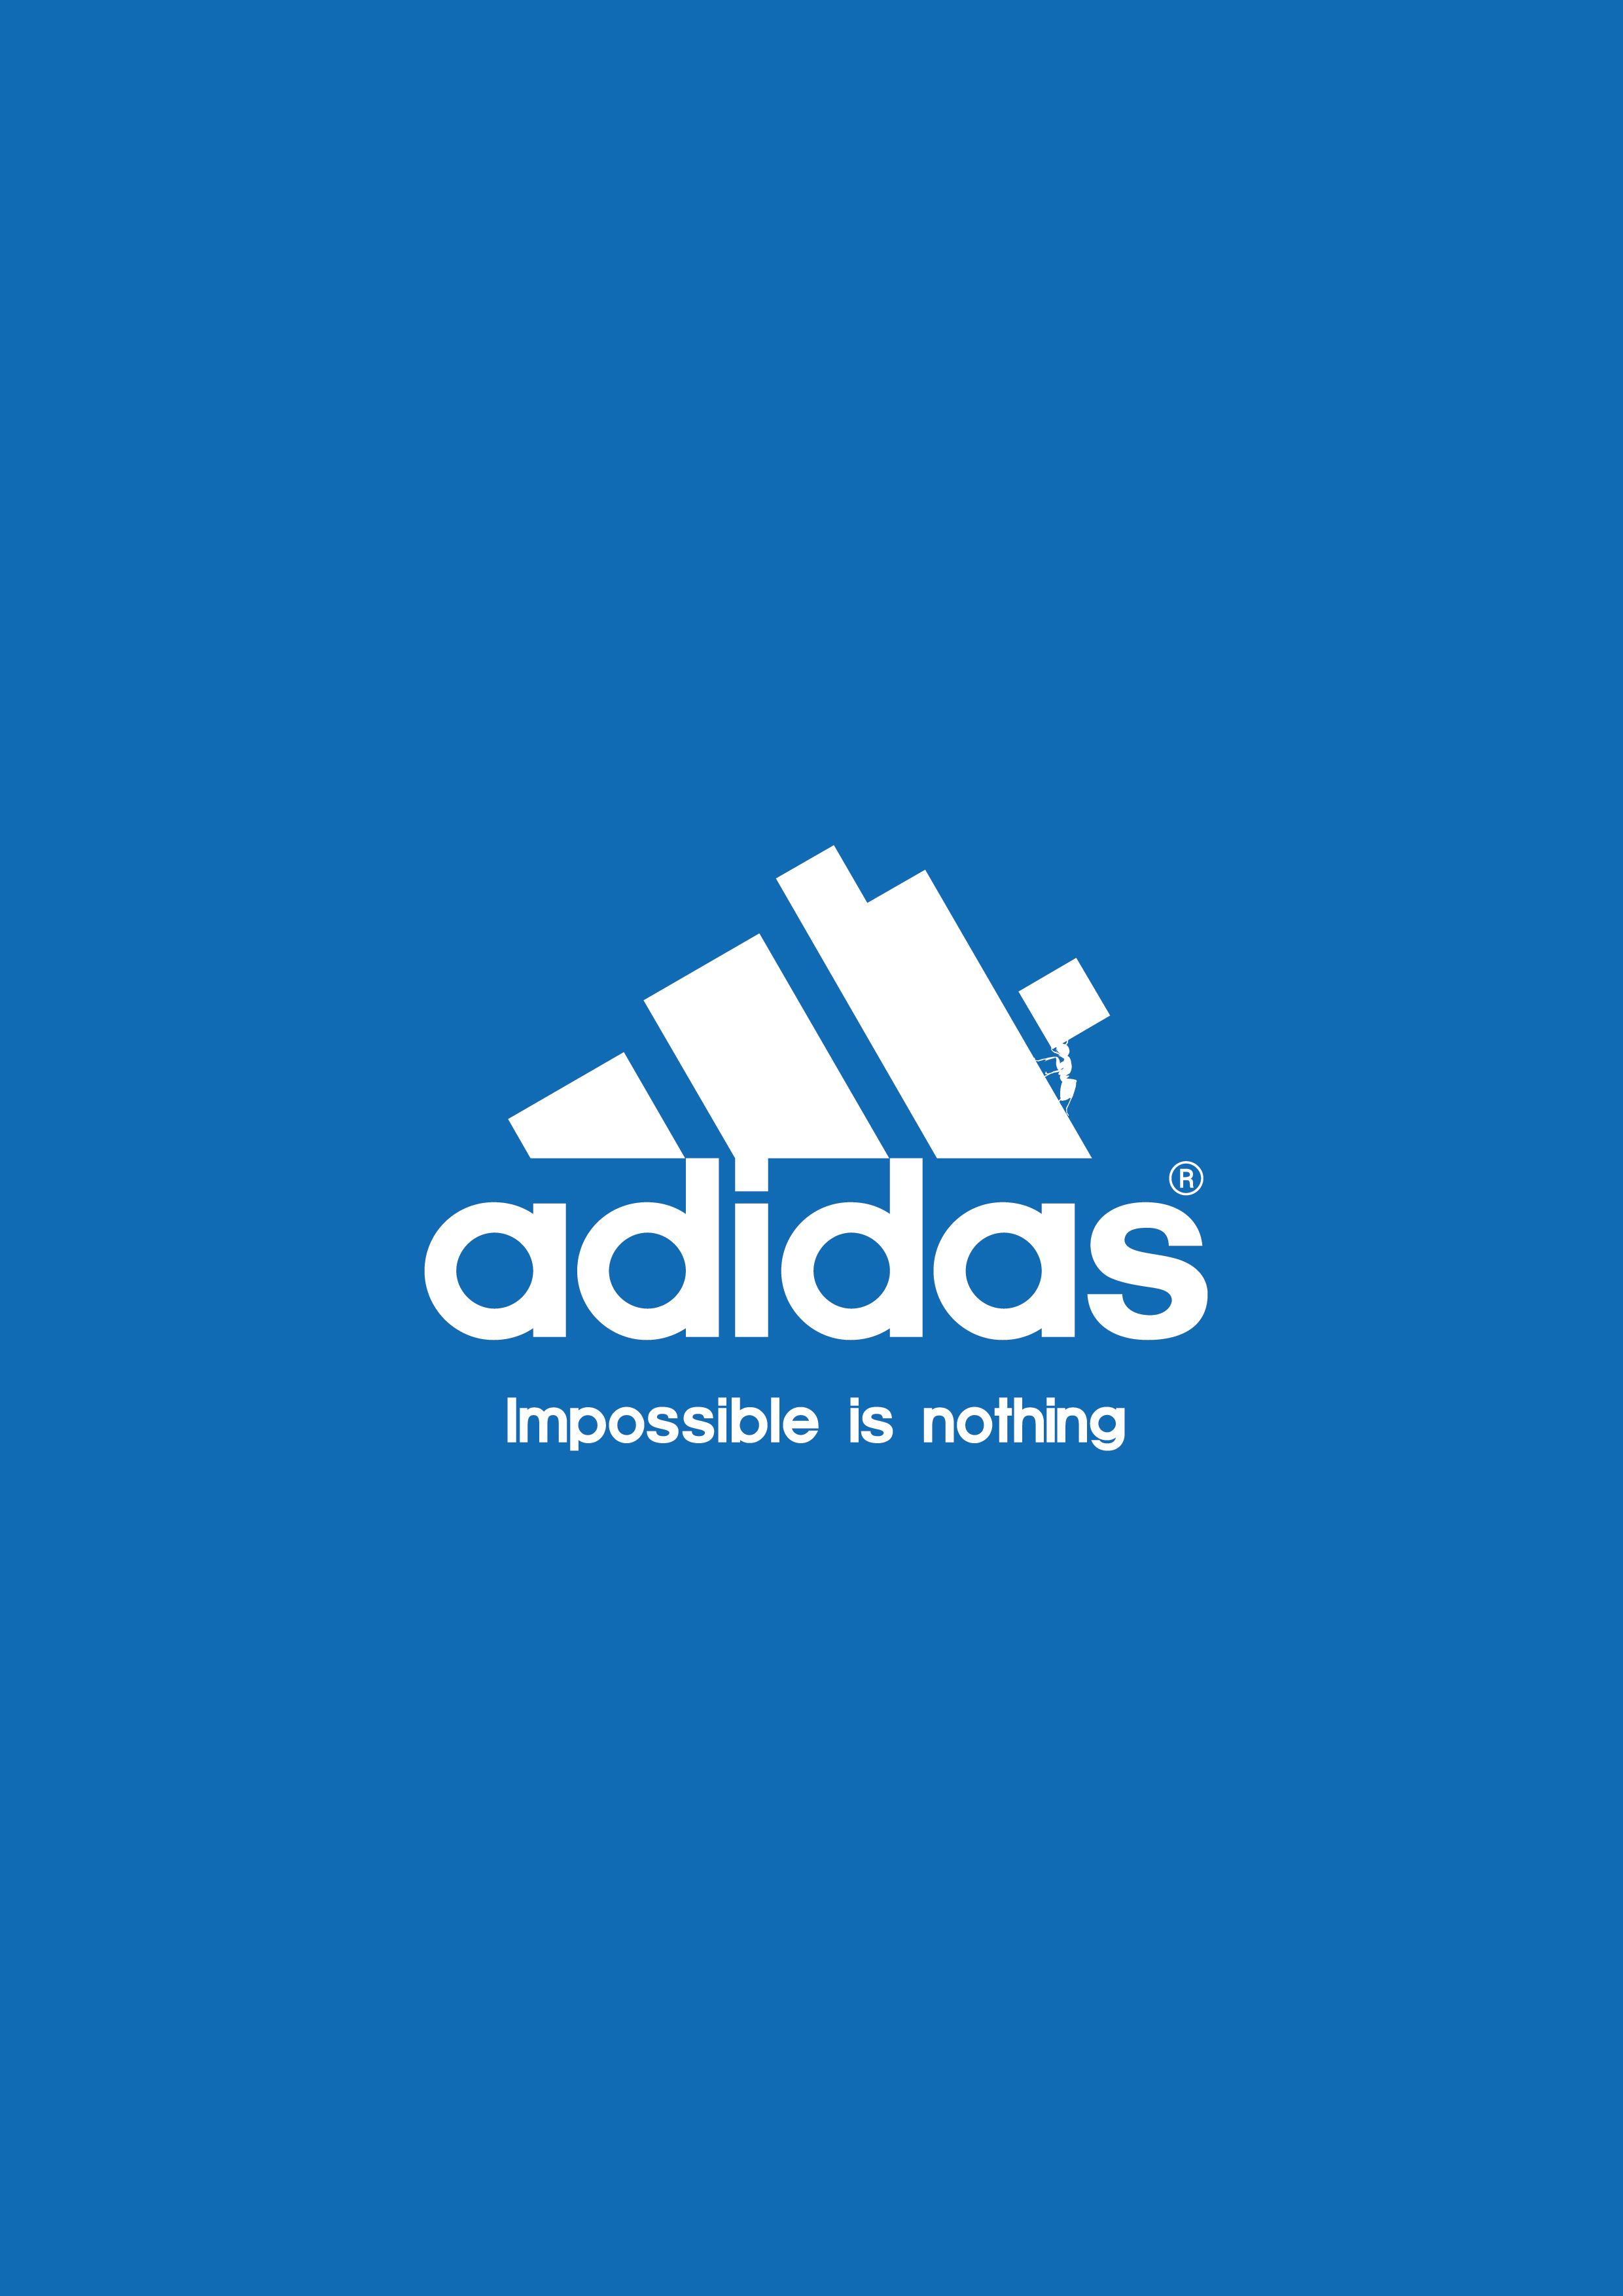 Impossible Is Nothing Adidas Ad Advertisement Print Design Poster Adidas Wallpapers Adidas Logo Wallpapers Adidas